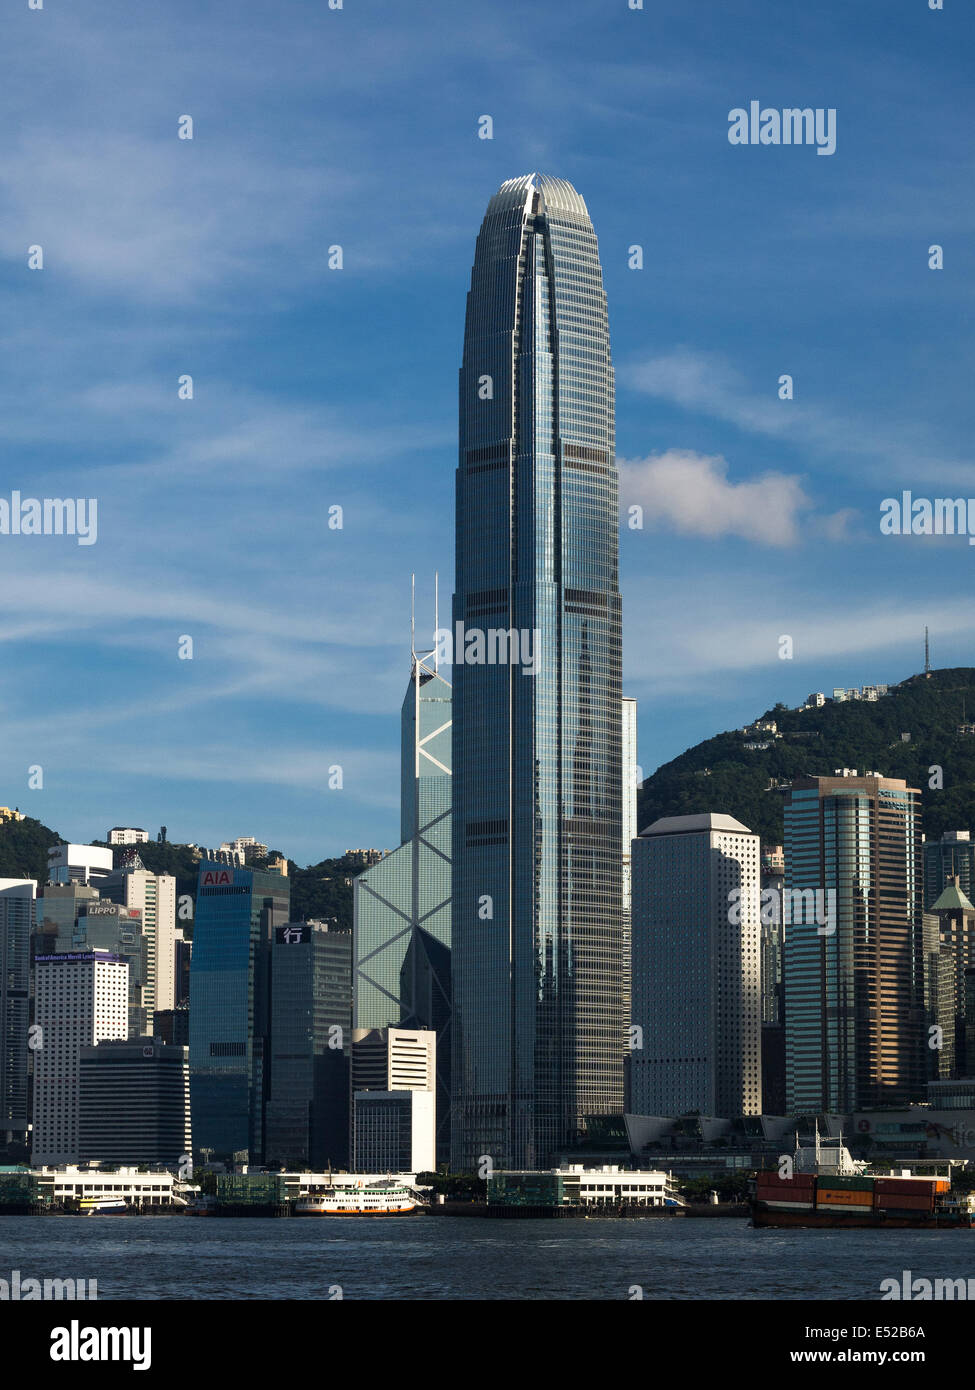 IFC Tower 2, International Finance Centre Hong Kong Central Banque D'Images, Photo Stock: 71967458 - Alamy